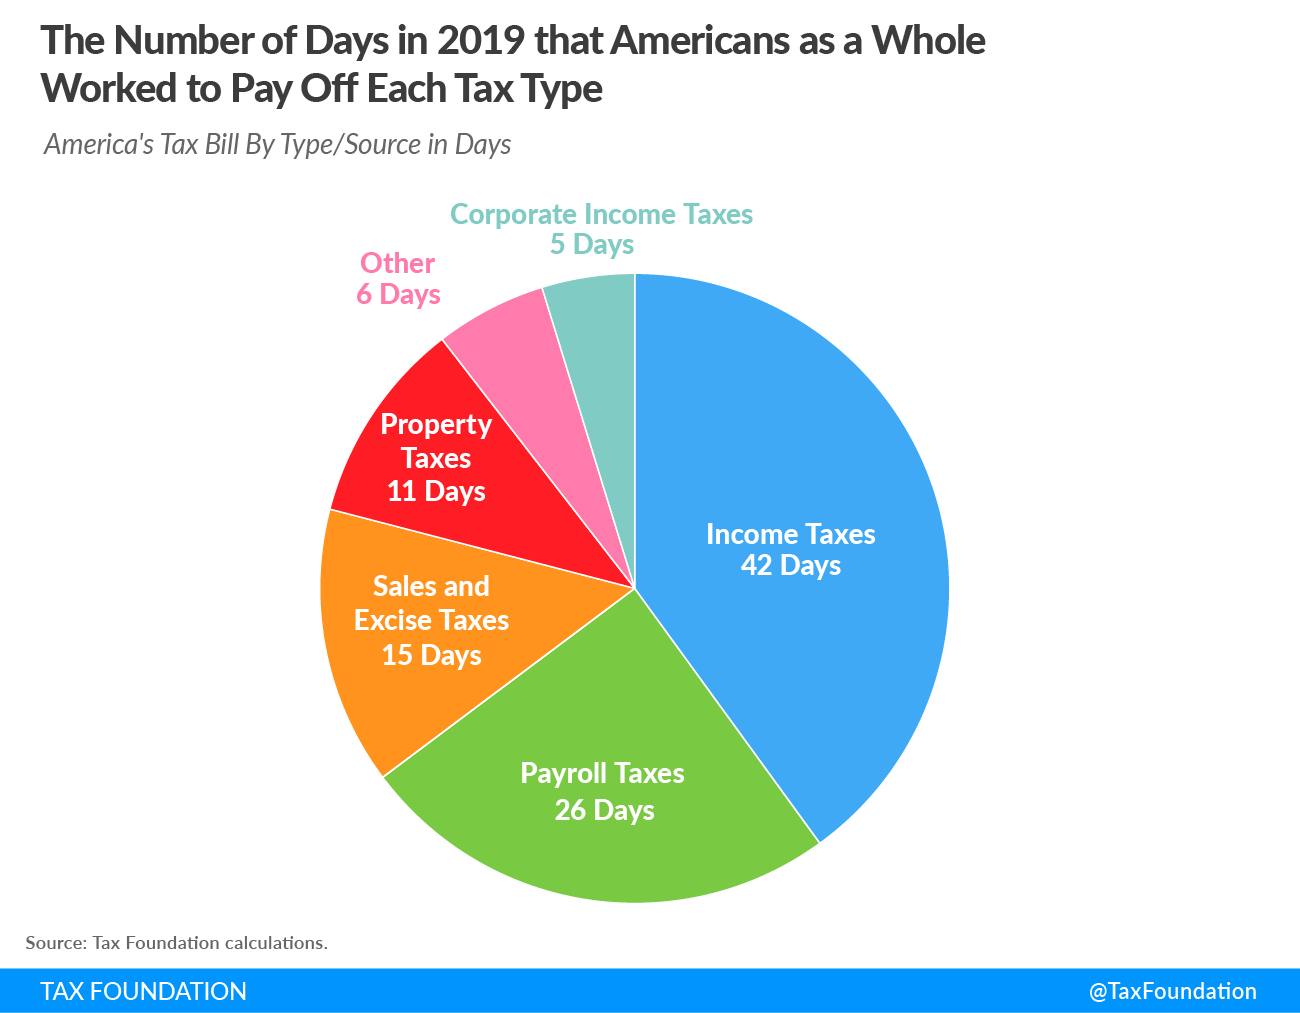 2019 Tax Freedom Day 2019 the number of days in 2019 that America as a whole worked to pay off each tax type